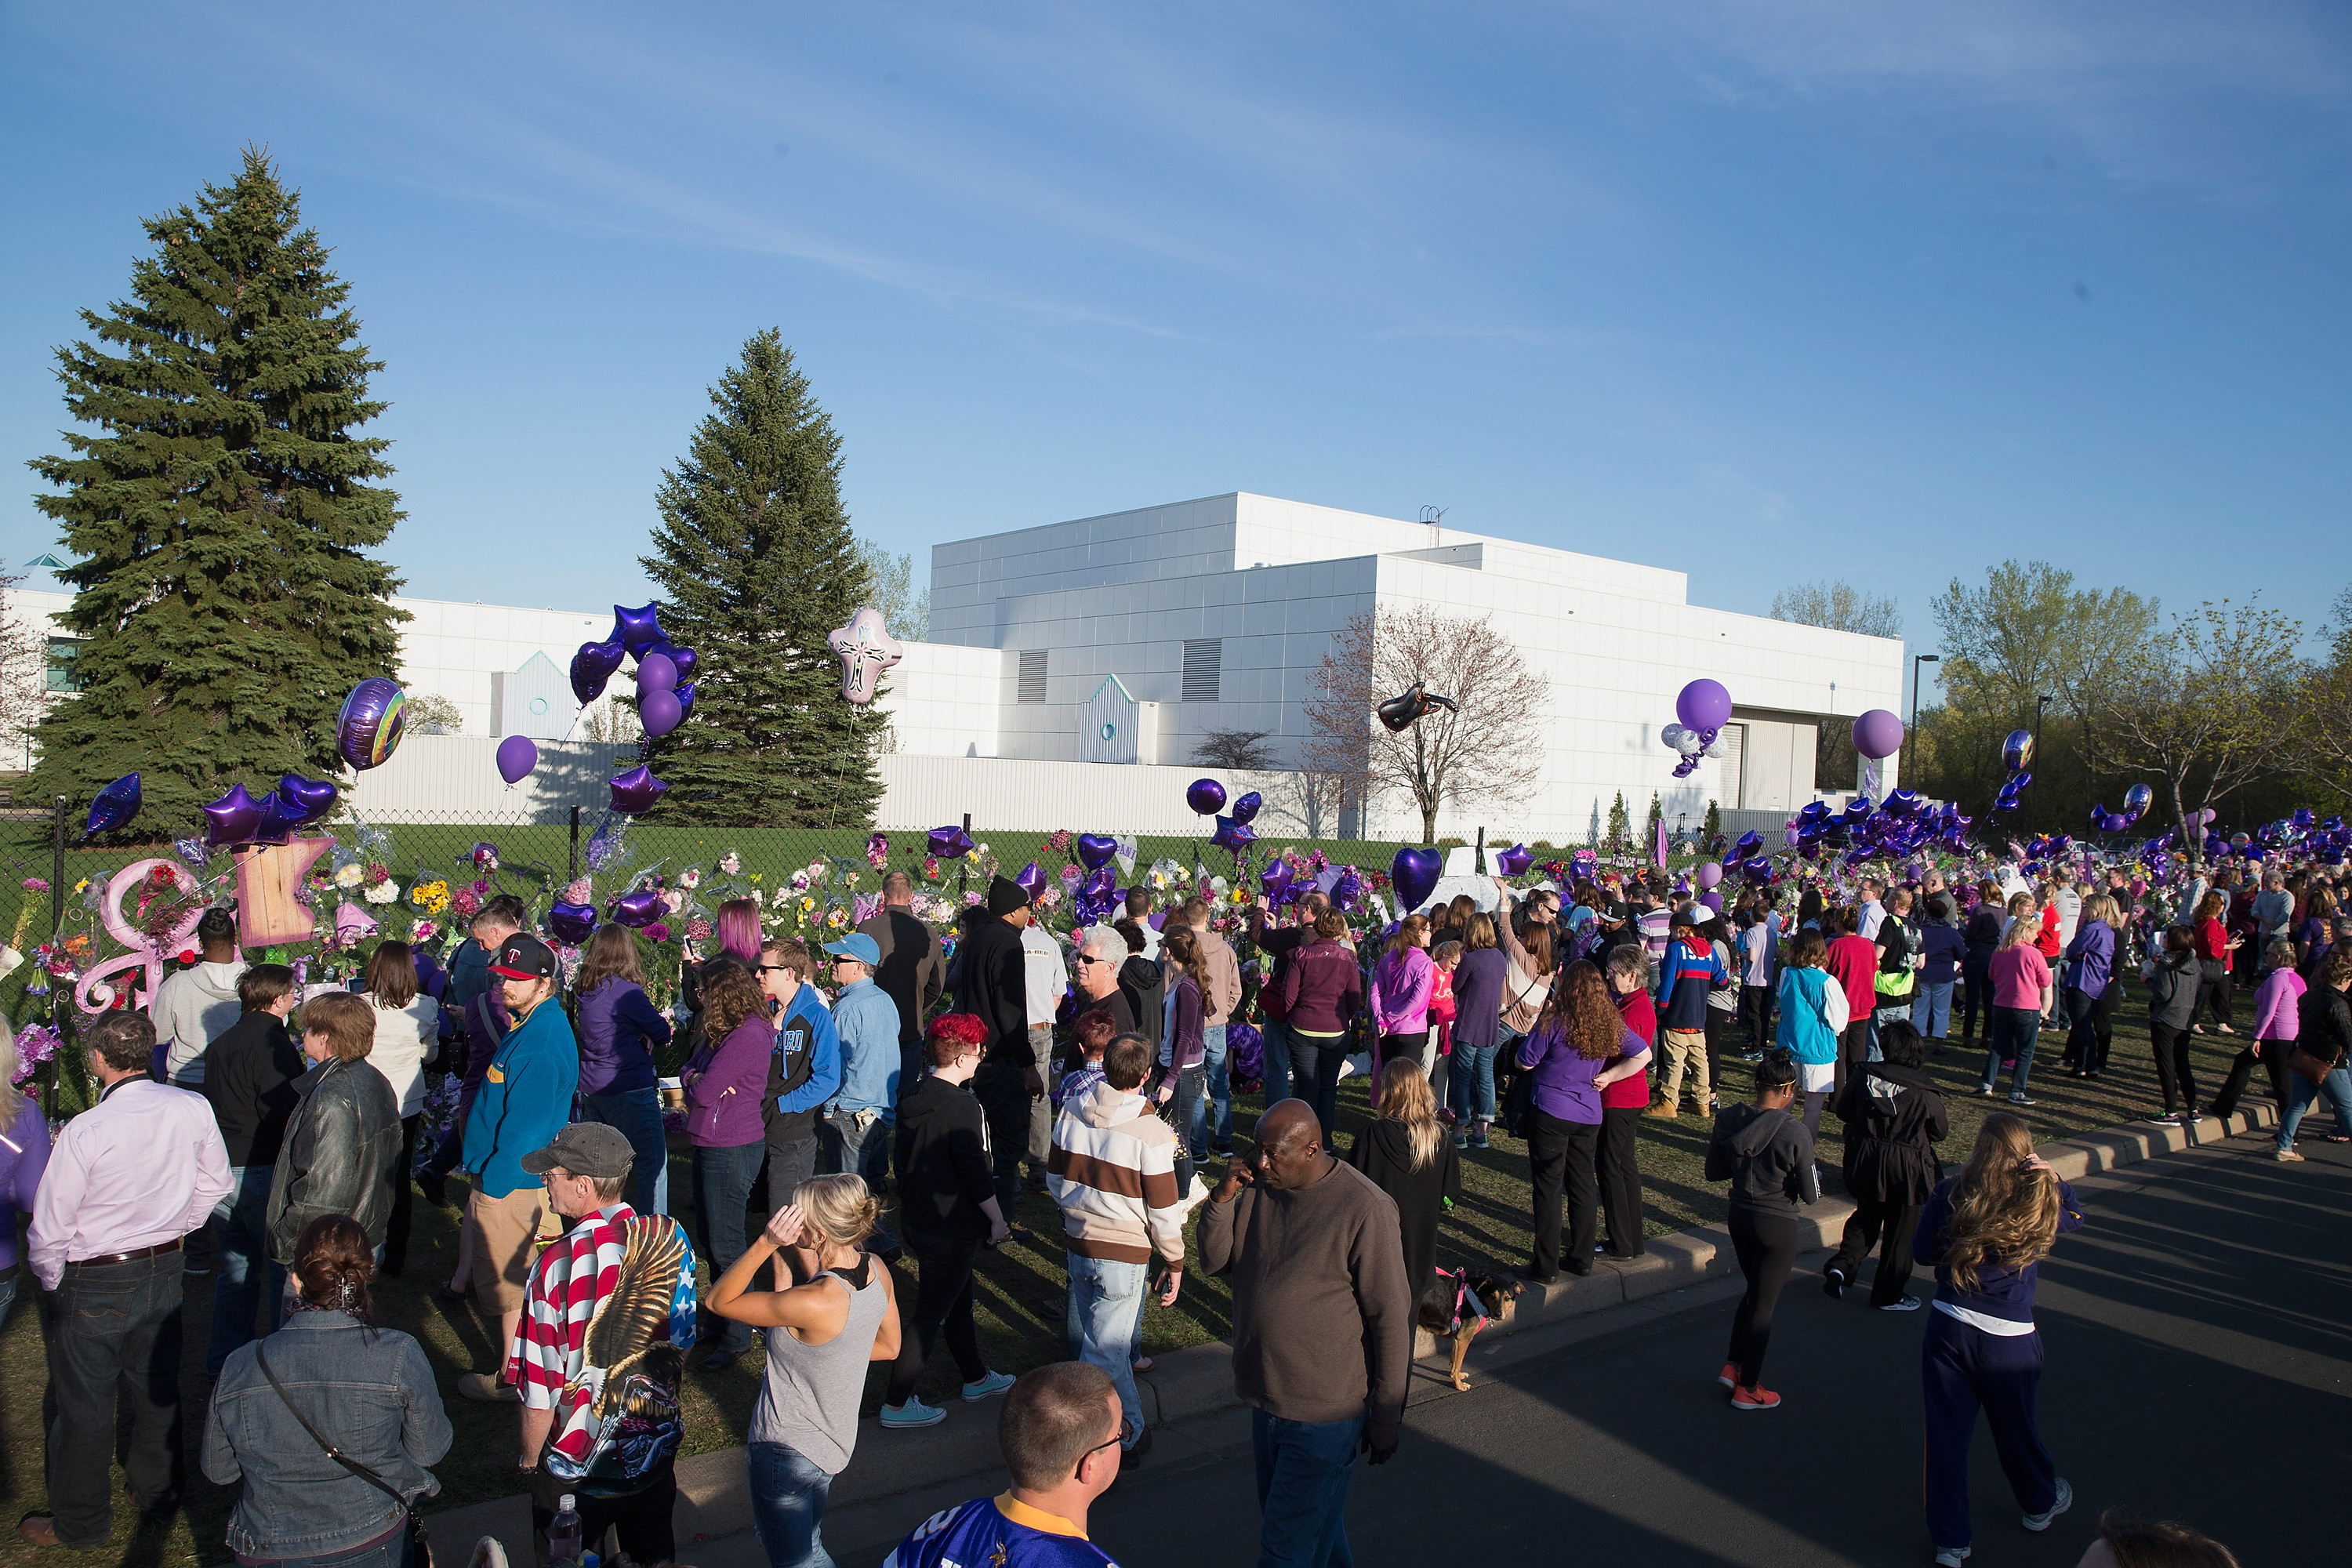 CHANHASSEN, MN - APRIL 22:  Music fans visit a memorial outside Paisley Park, the home and studio of Prince, on April 22, 2016 in Chanhassen, Minnesota. Prince, 57, was pronounced dead shortly after being found unresponsive yesterday at Paisley Park.  (Photo by Scott Olson/Getty Images)